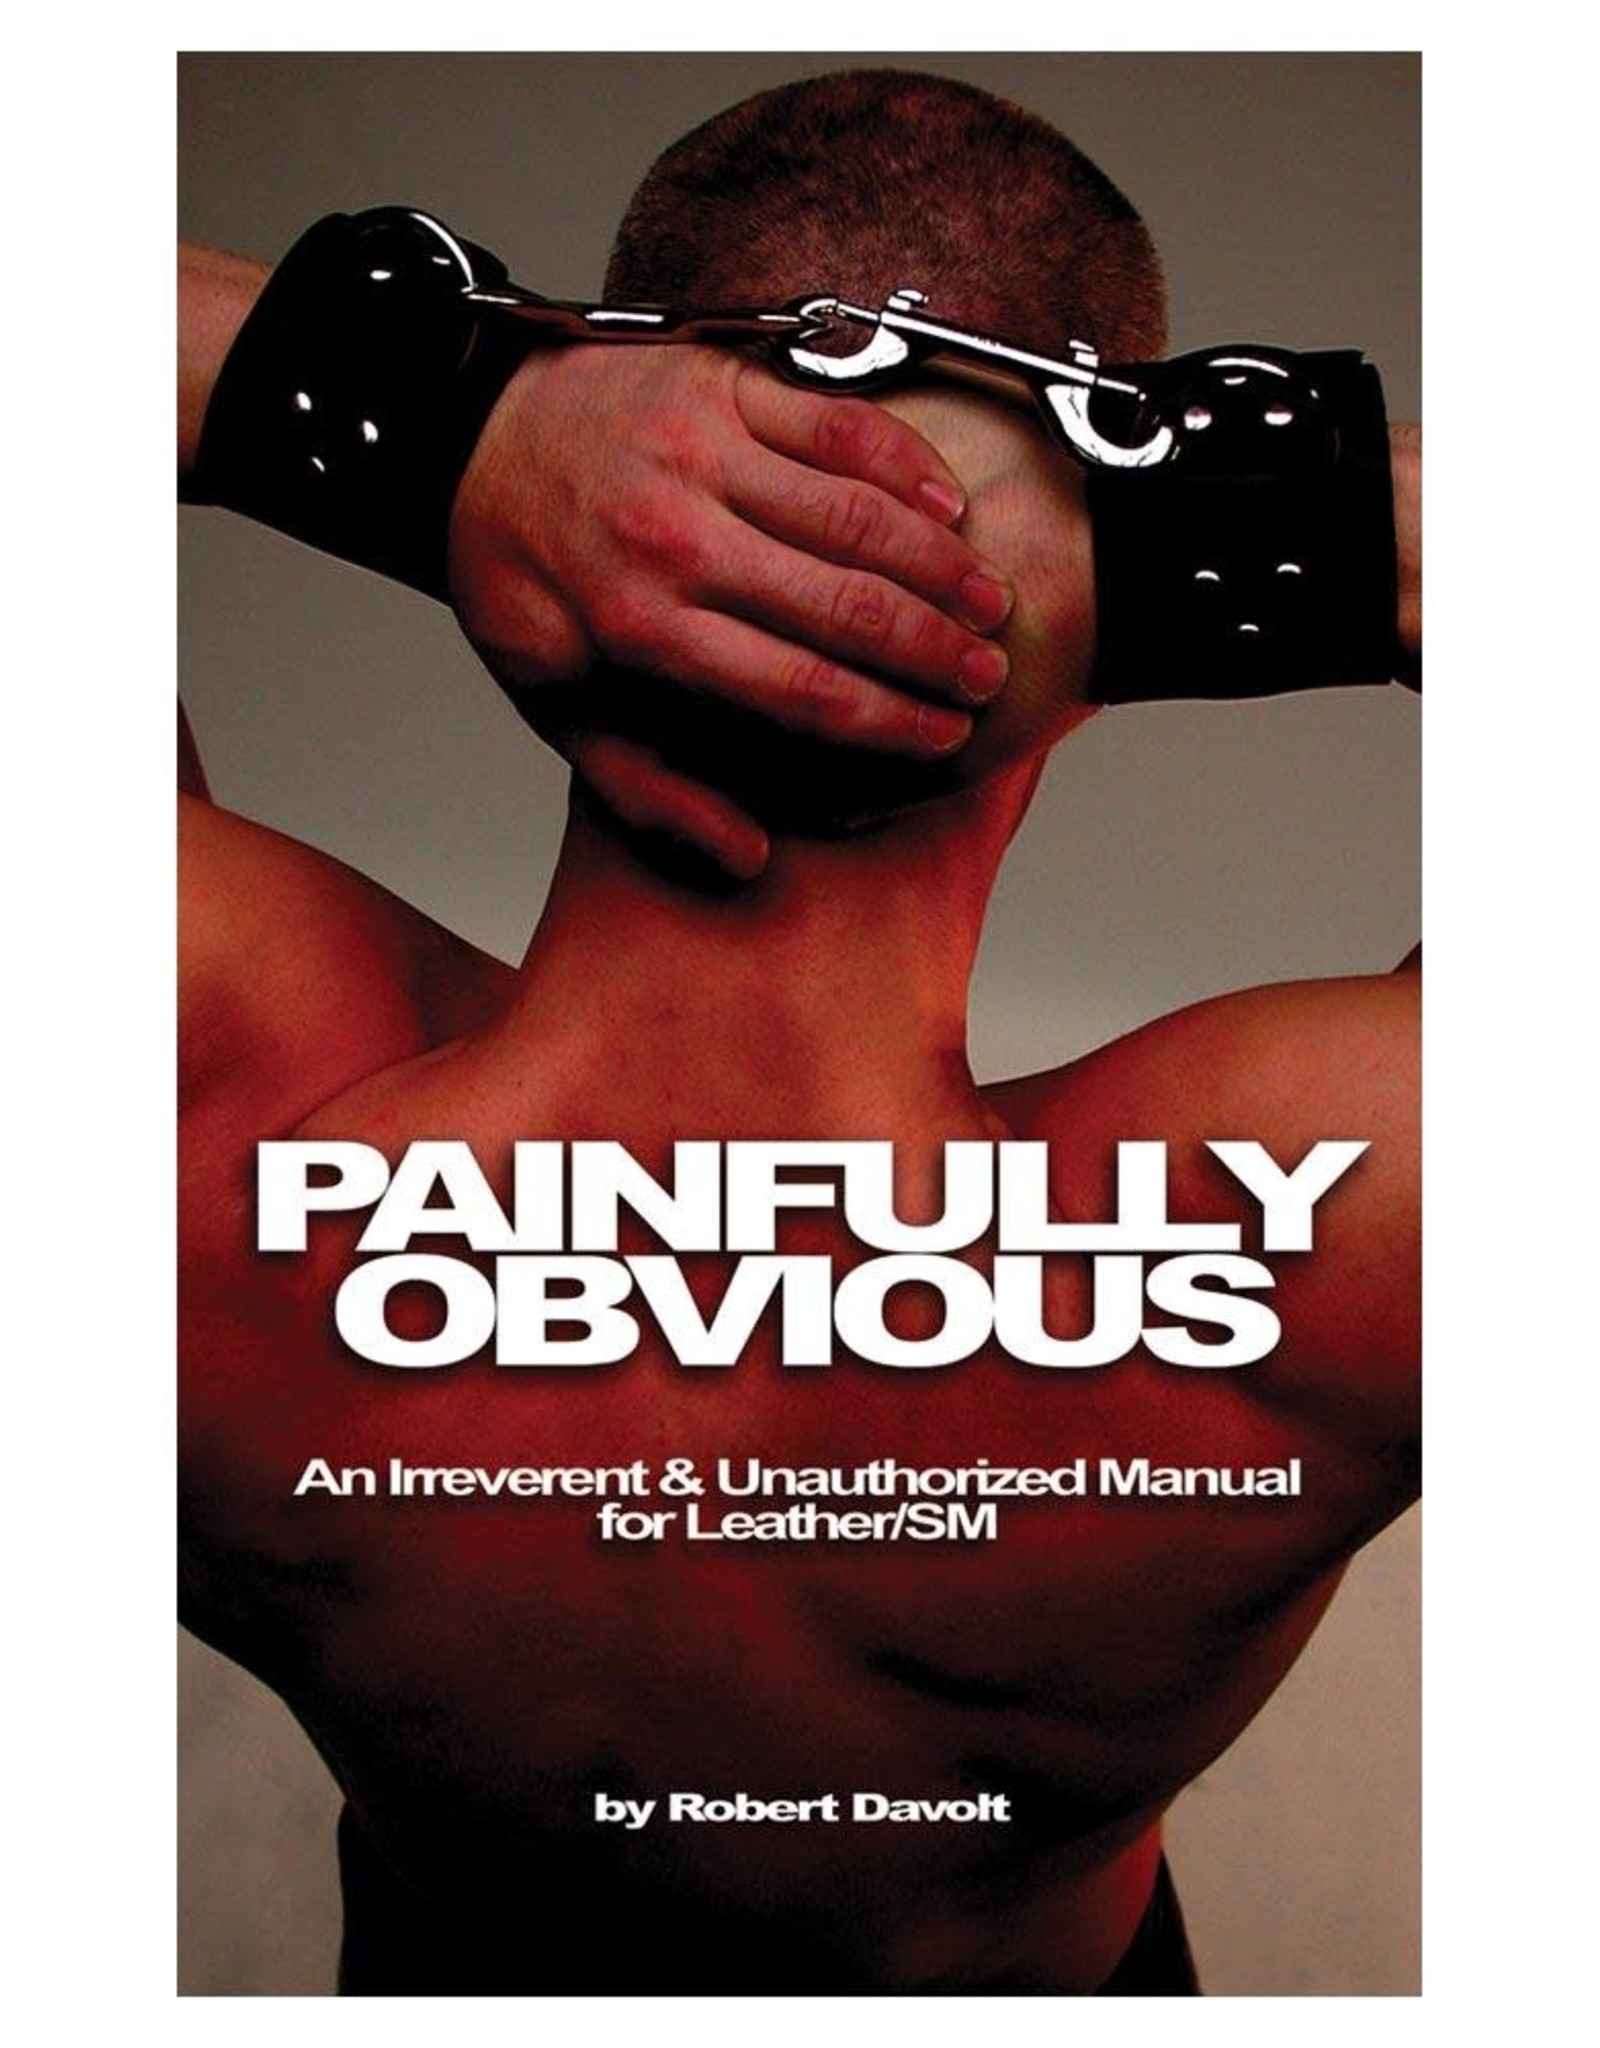 Stockroom Stockroom Books Painfully Obvious: An Irreverent & Unauthorized Manual for Leather/SM by Robert Davolt